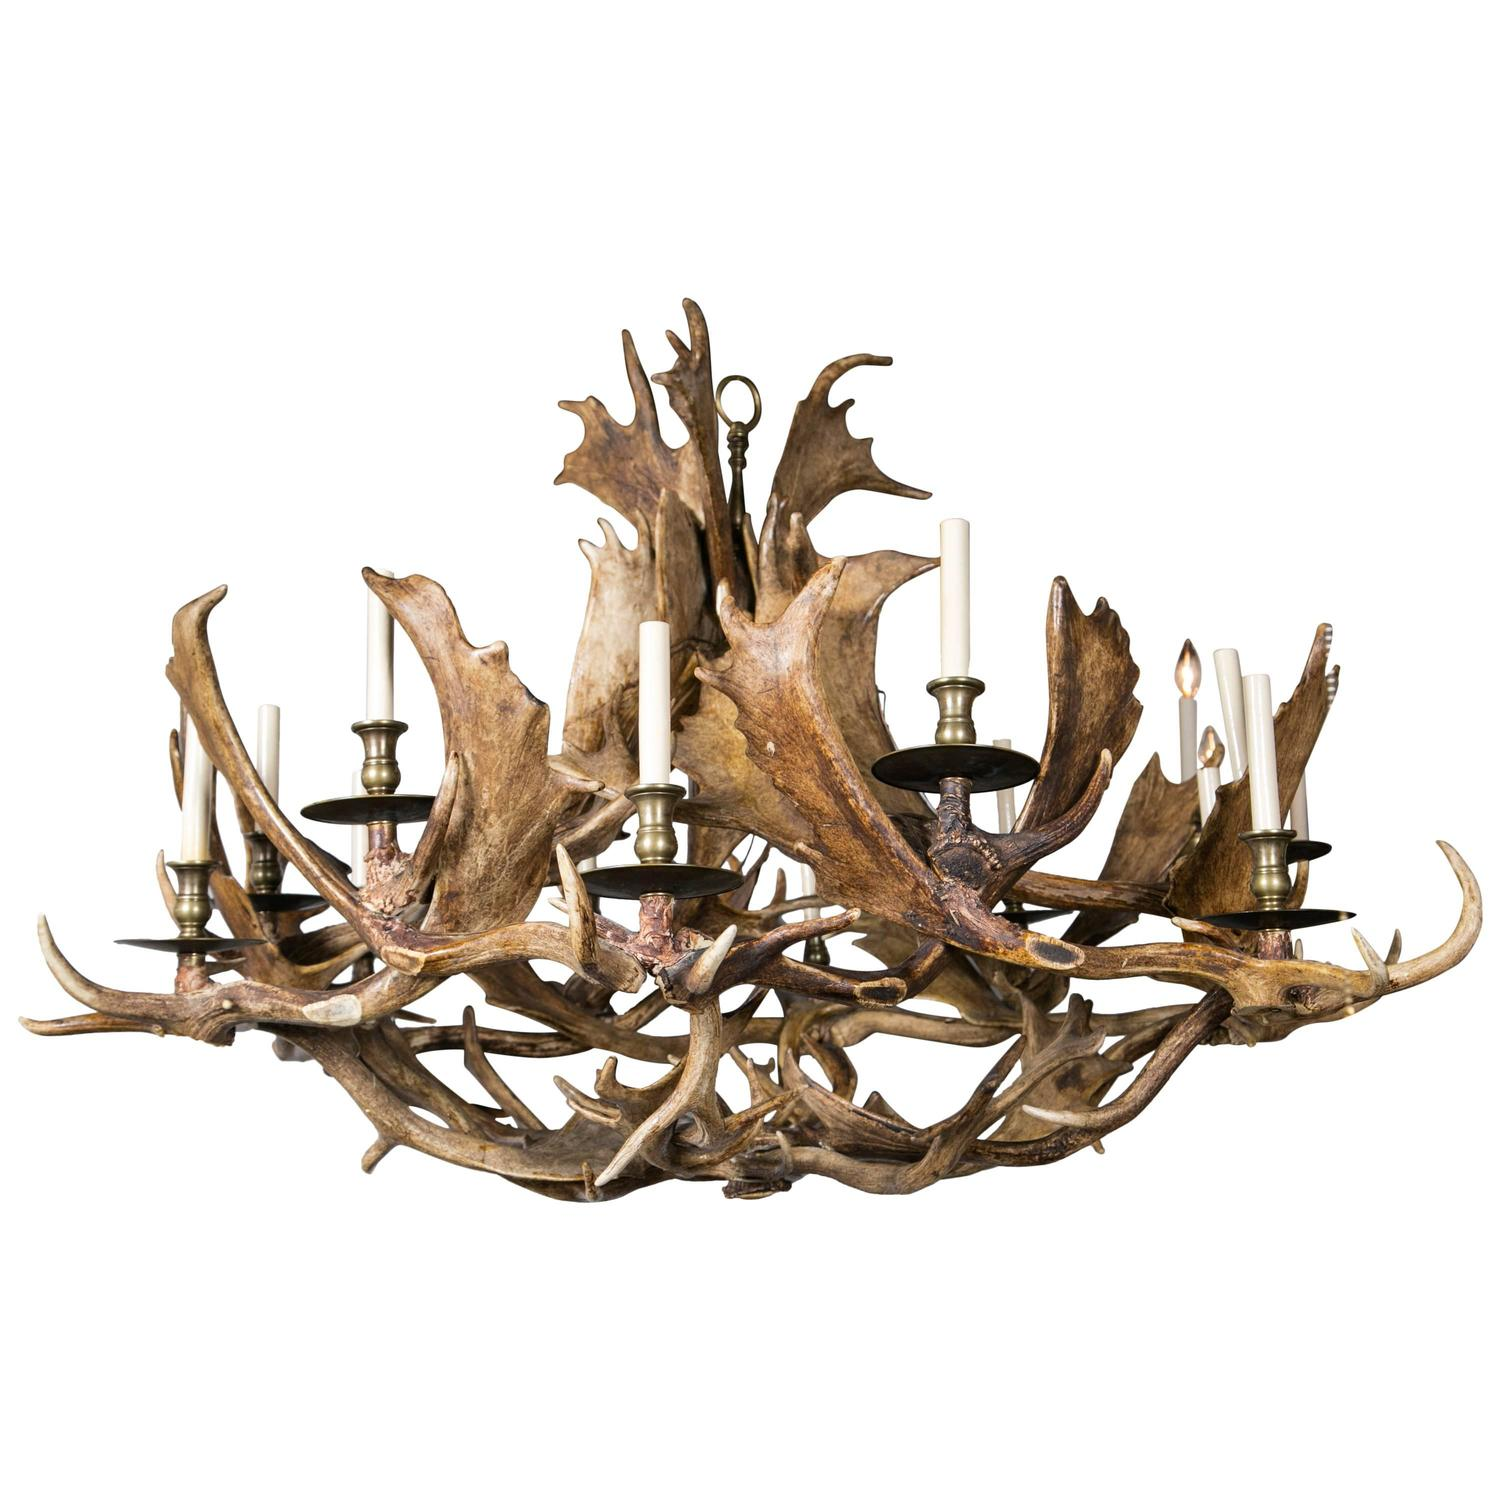 Fantastic Twelve Light Caribou Antler Chandelier For Sale at 1stdibs